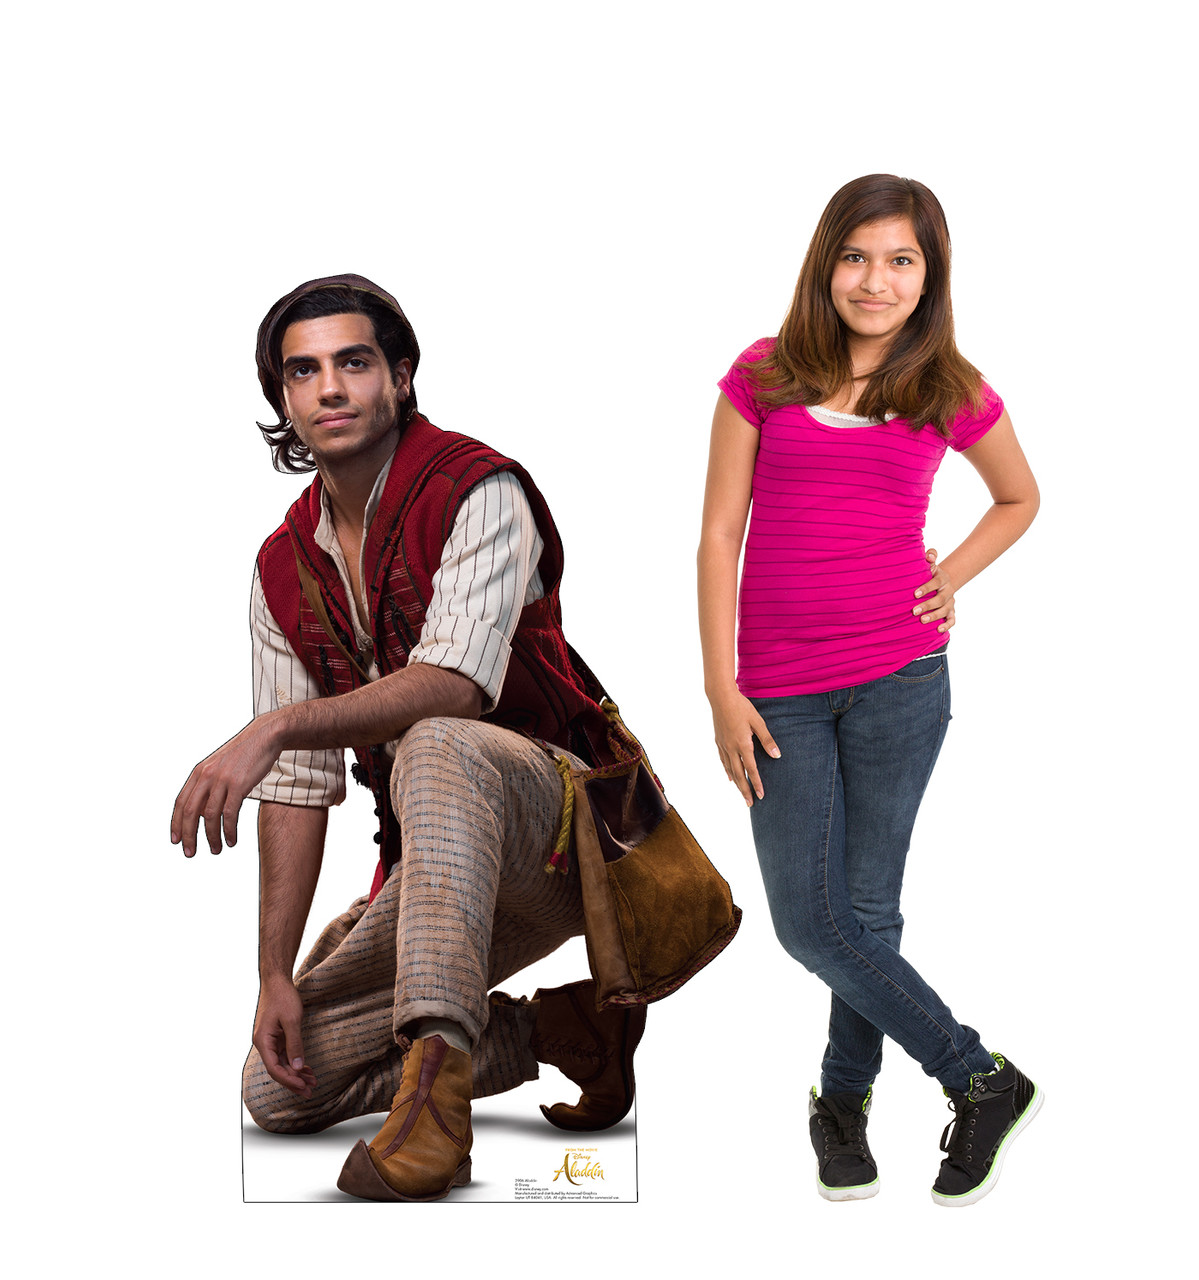 Life-size cardboard standee of Aladdin from the Disney live action movie with model.